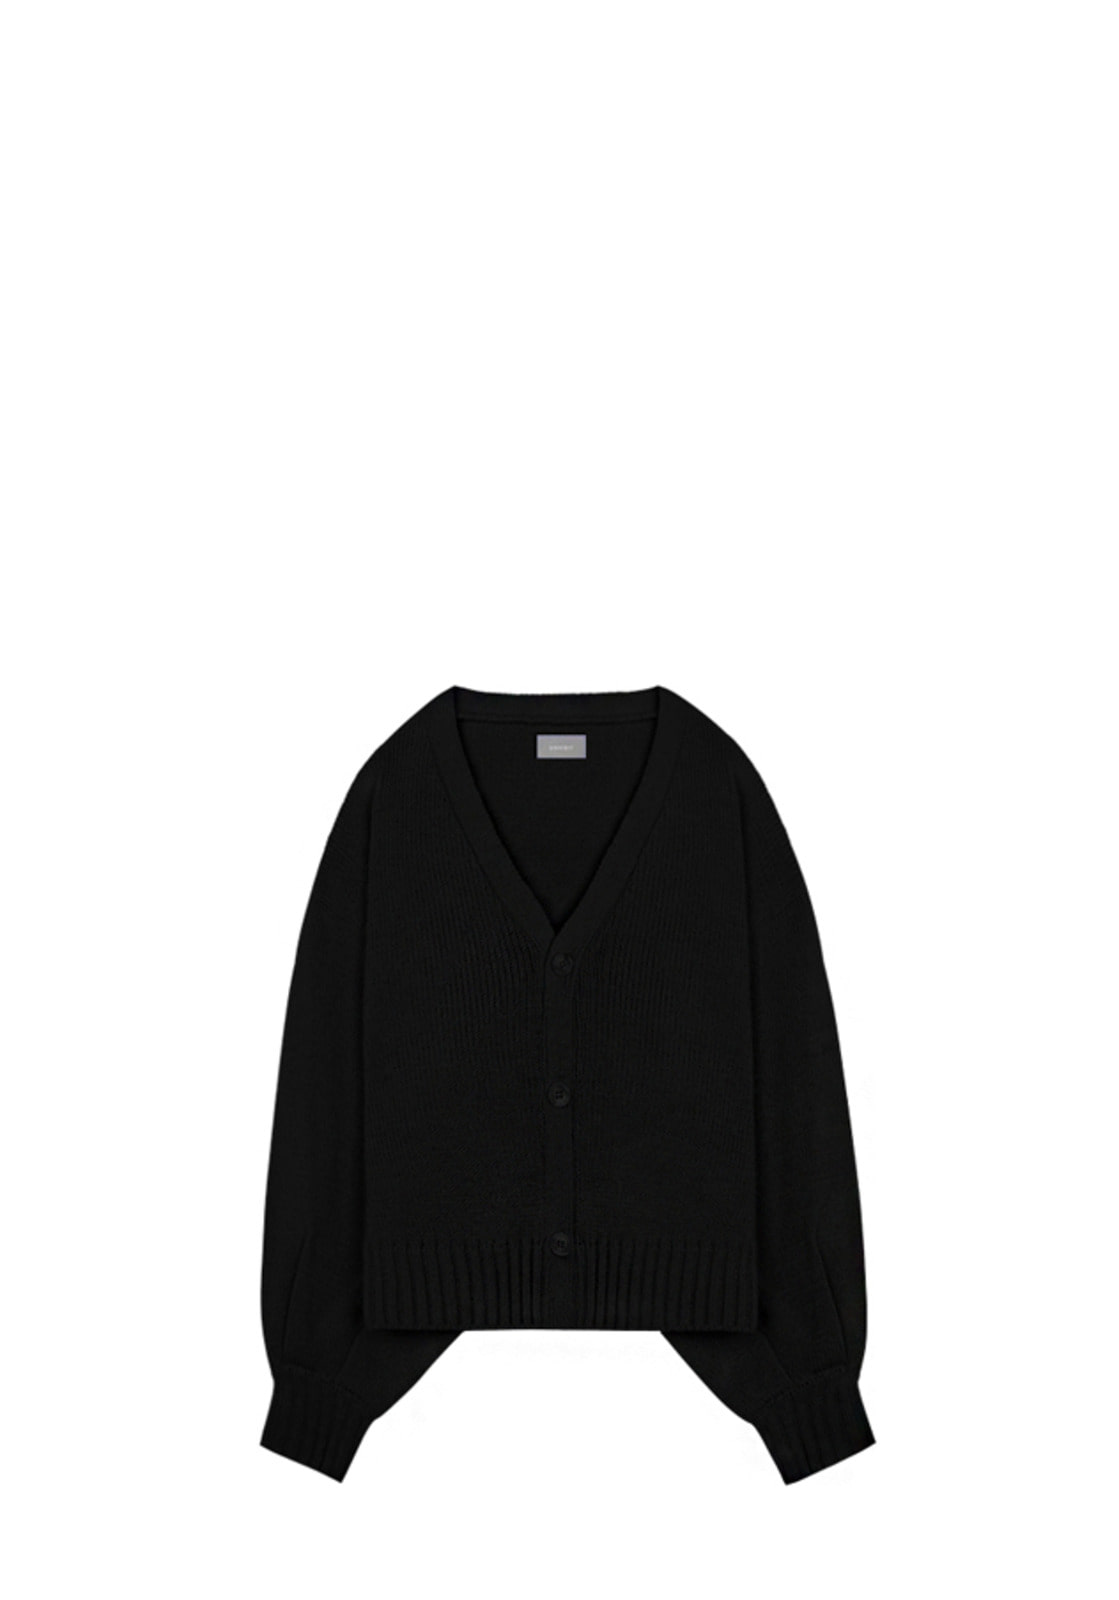 V534 BALLOON KNIT CARDIGAN  BLACK